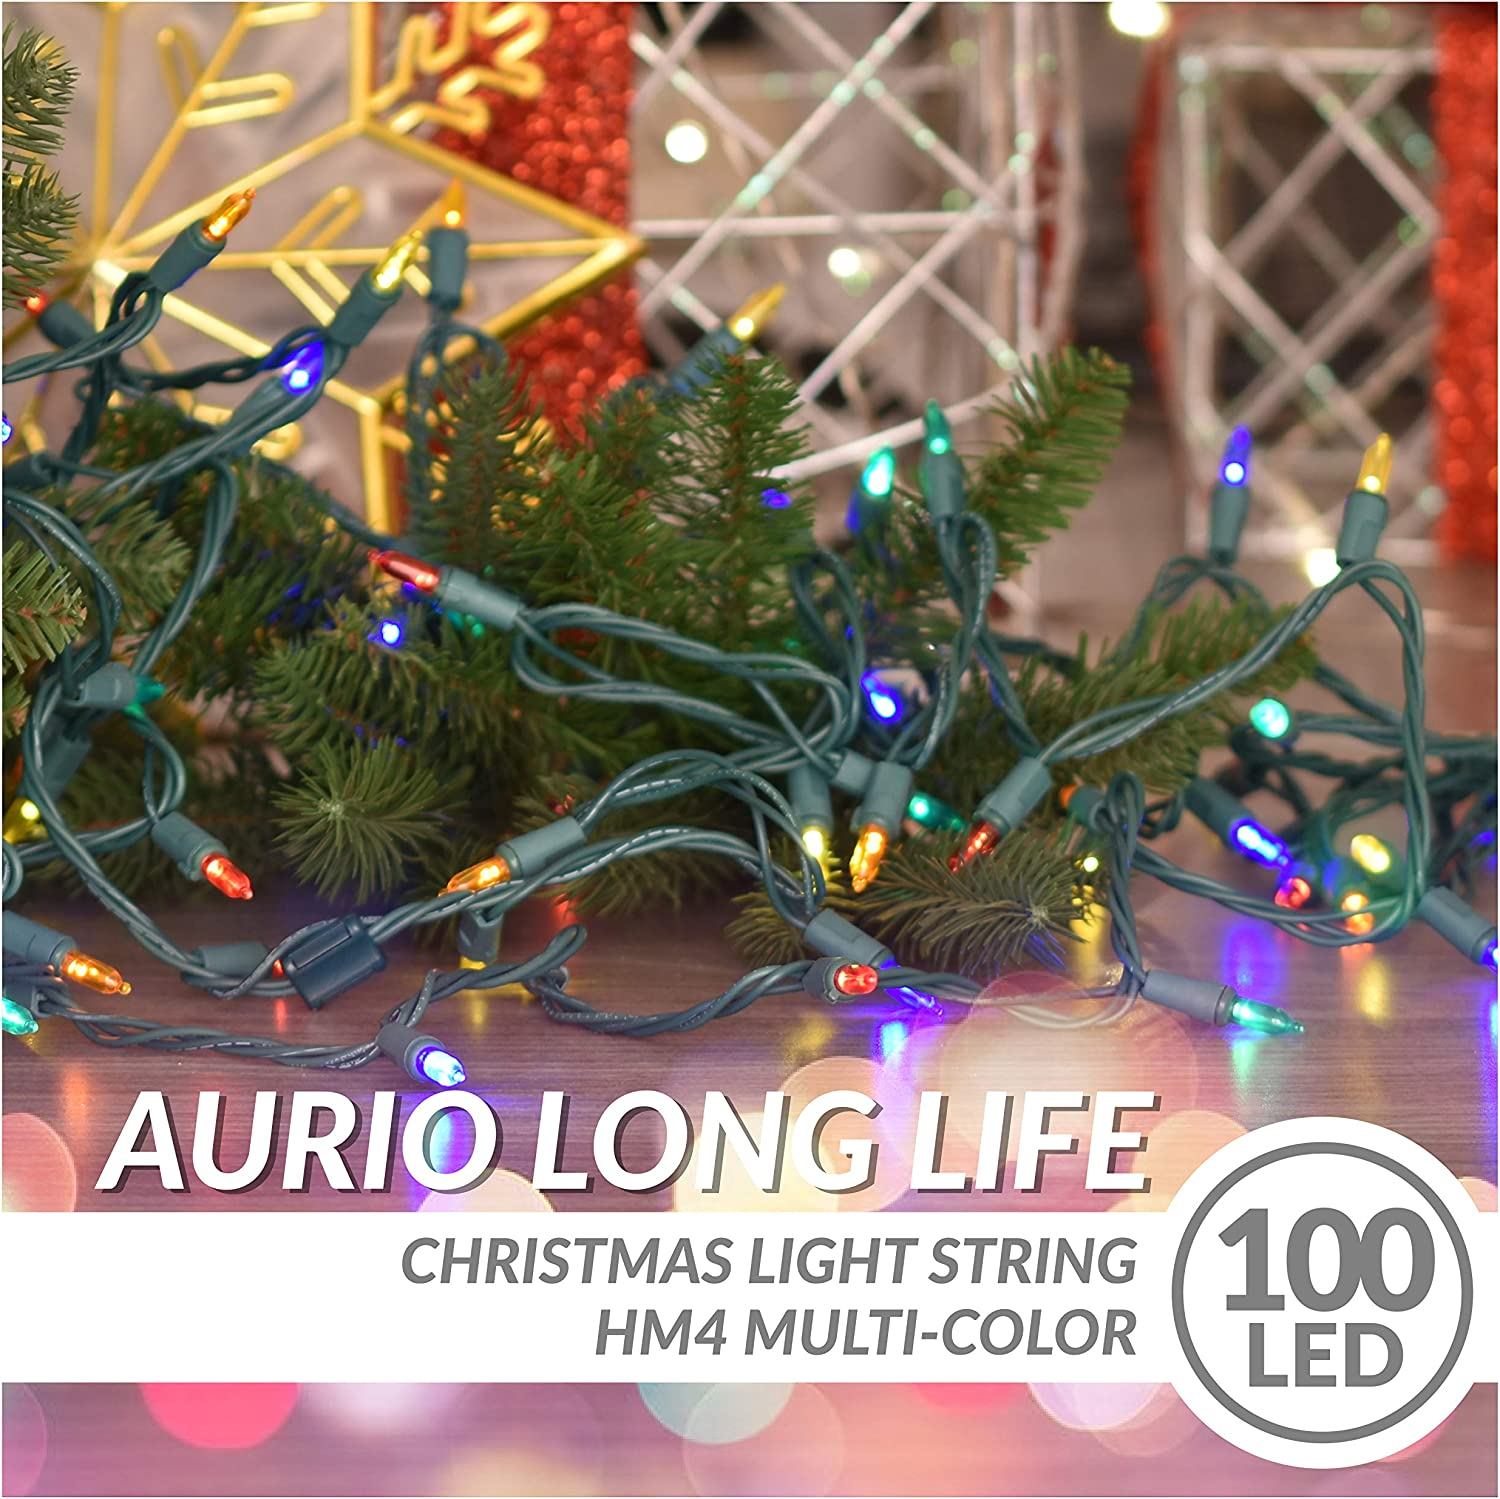 24.8ft 100-Count LED End-to-End Connectable C5 Christmas String Lights Aurio Christmas Lights Light Strings for Party Warm White Wedding Indoor /& Outdoor Christmas Tree Decoration